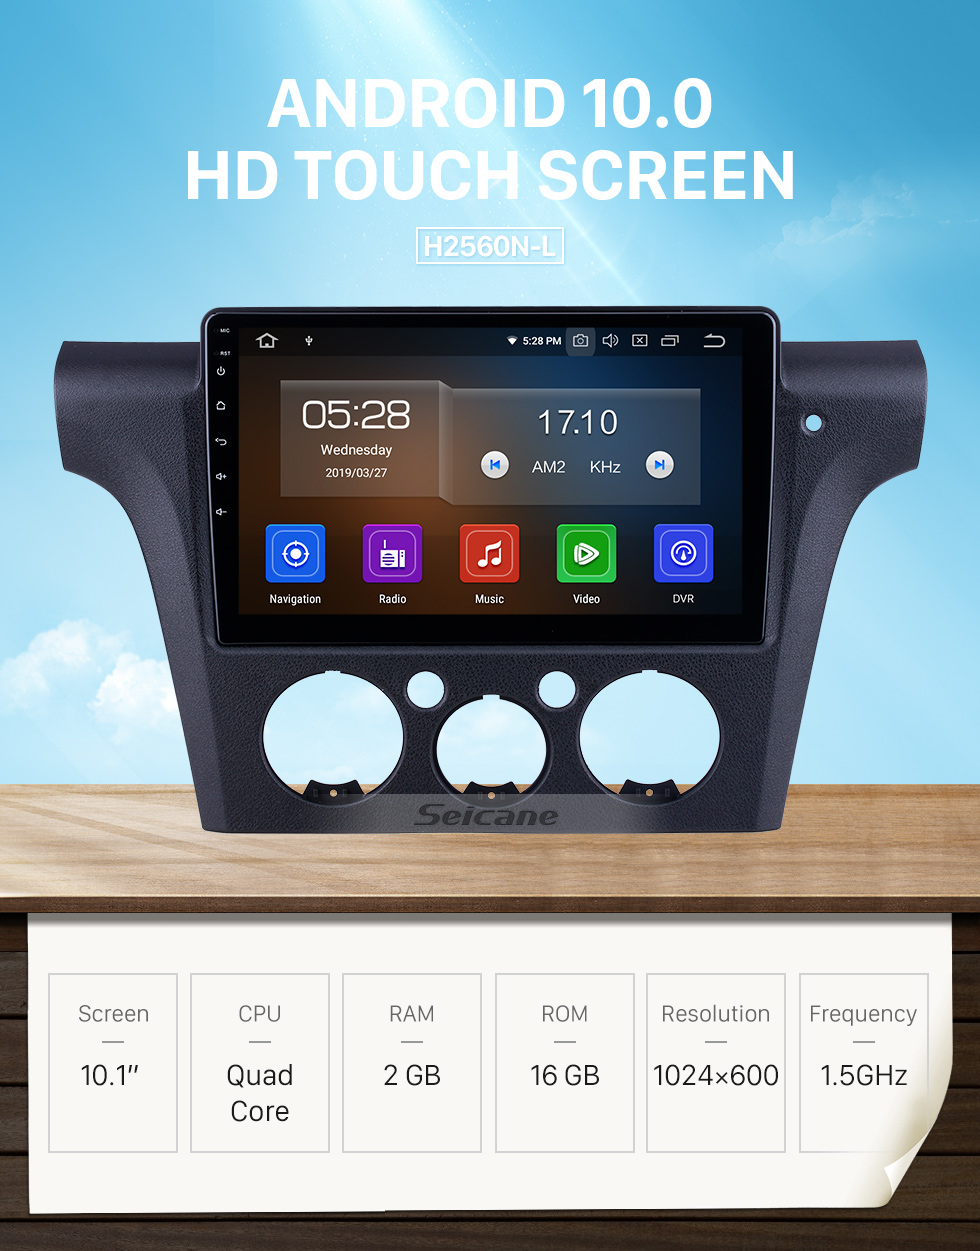 Seicane HD Touchscreen 10.1 inch for 2001-2004 2005 Mitsubishi Airtrek/Outlander Radio Android 10.0 GPS Navigation System Bluetooth Carplay support DSP